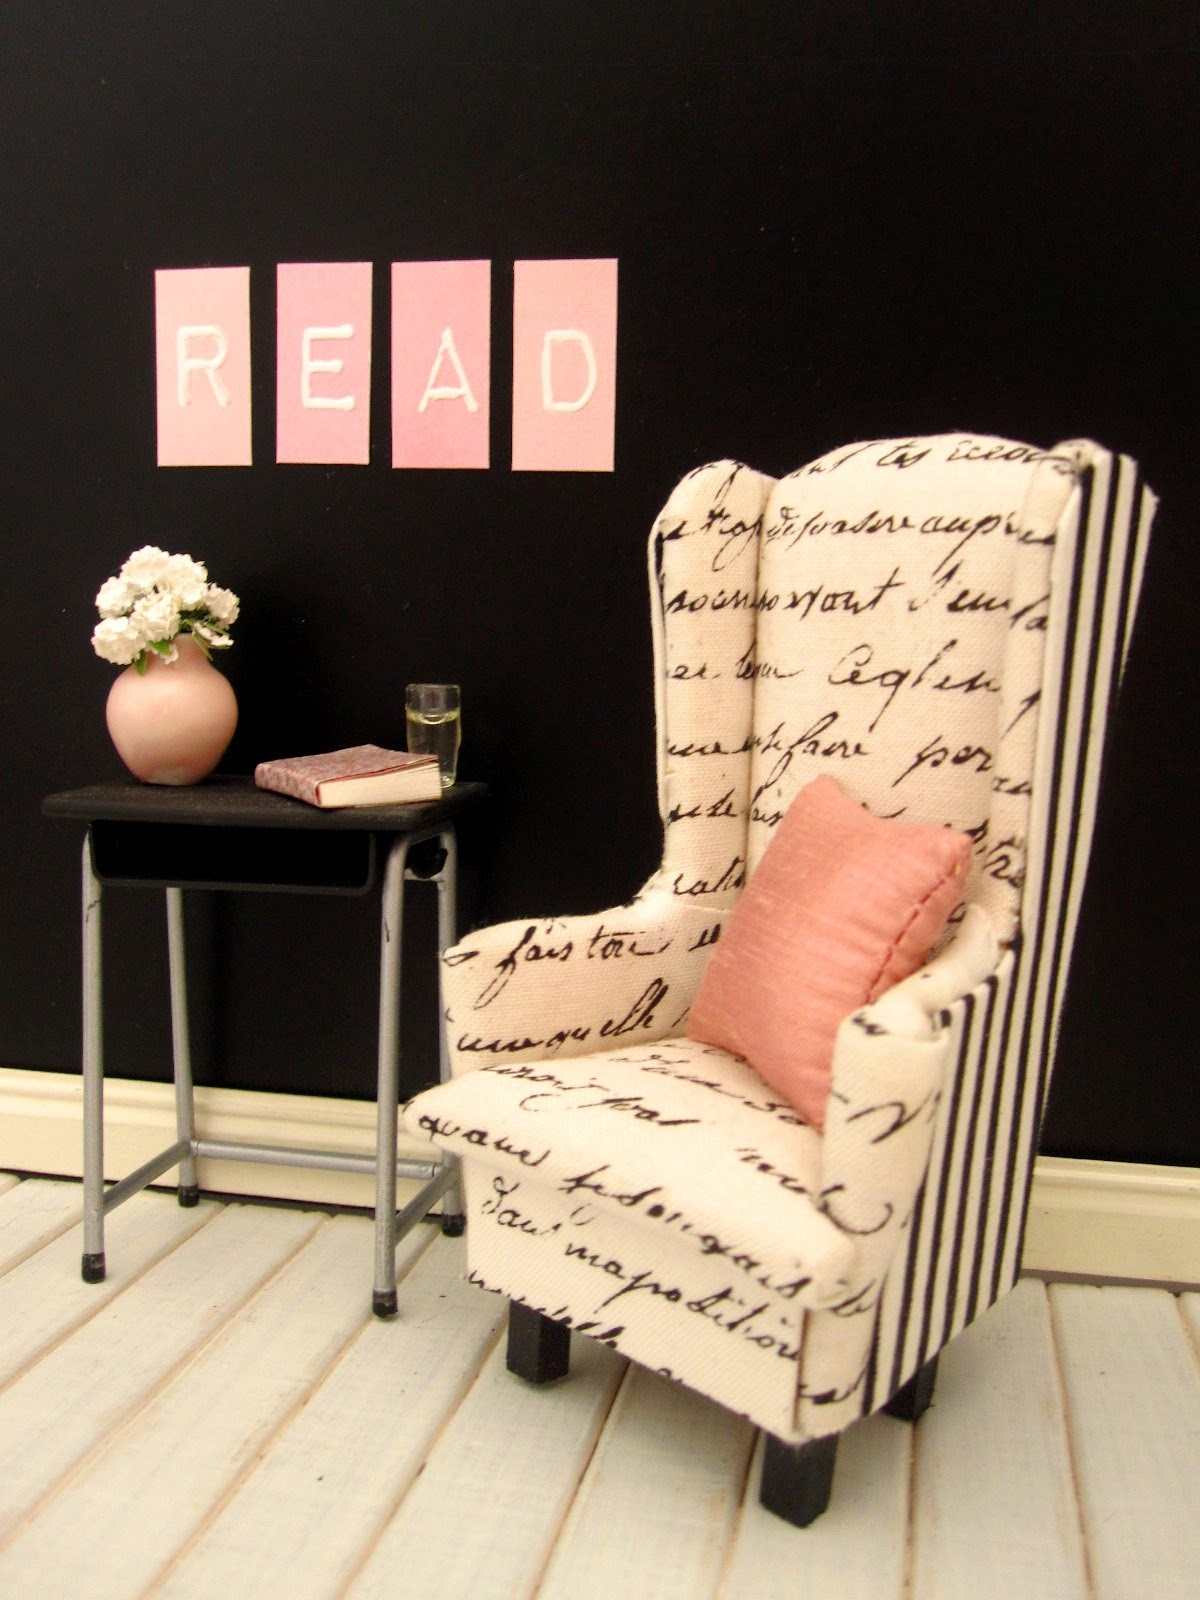 Modern doll's house miniature scene of a black and white wing chair against a black wall. On the wall are the letters R,E,A and D in pink and white and on the table under them is a pink vase, book and a glass of water.